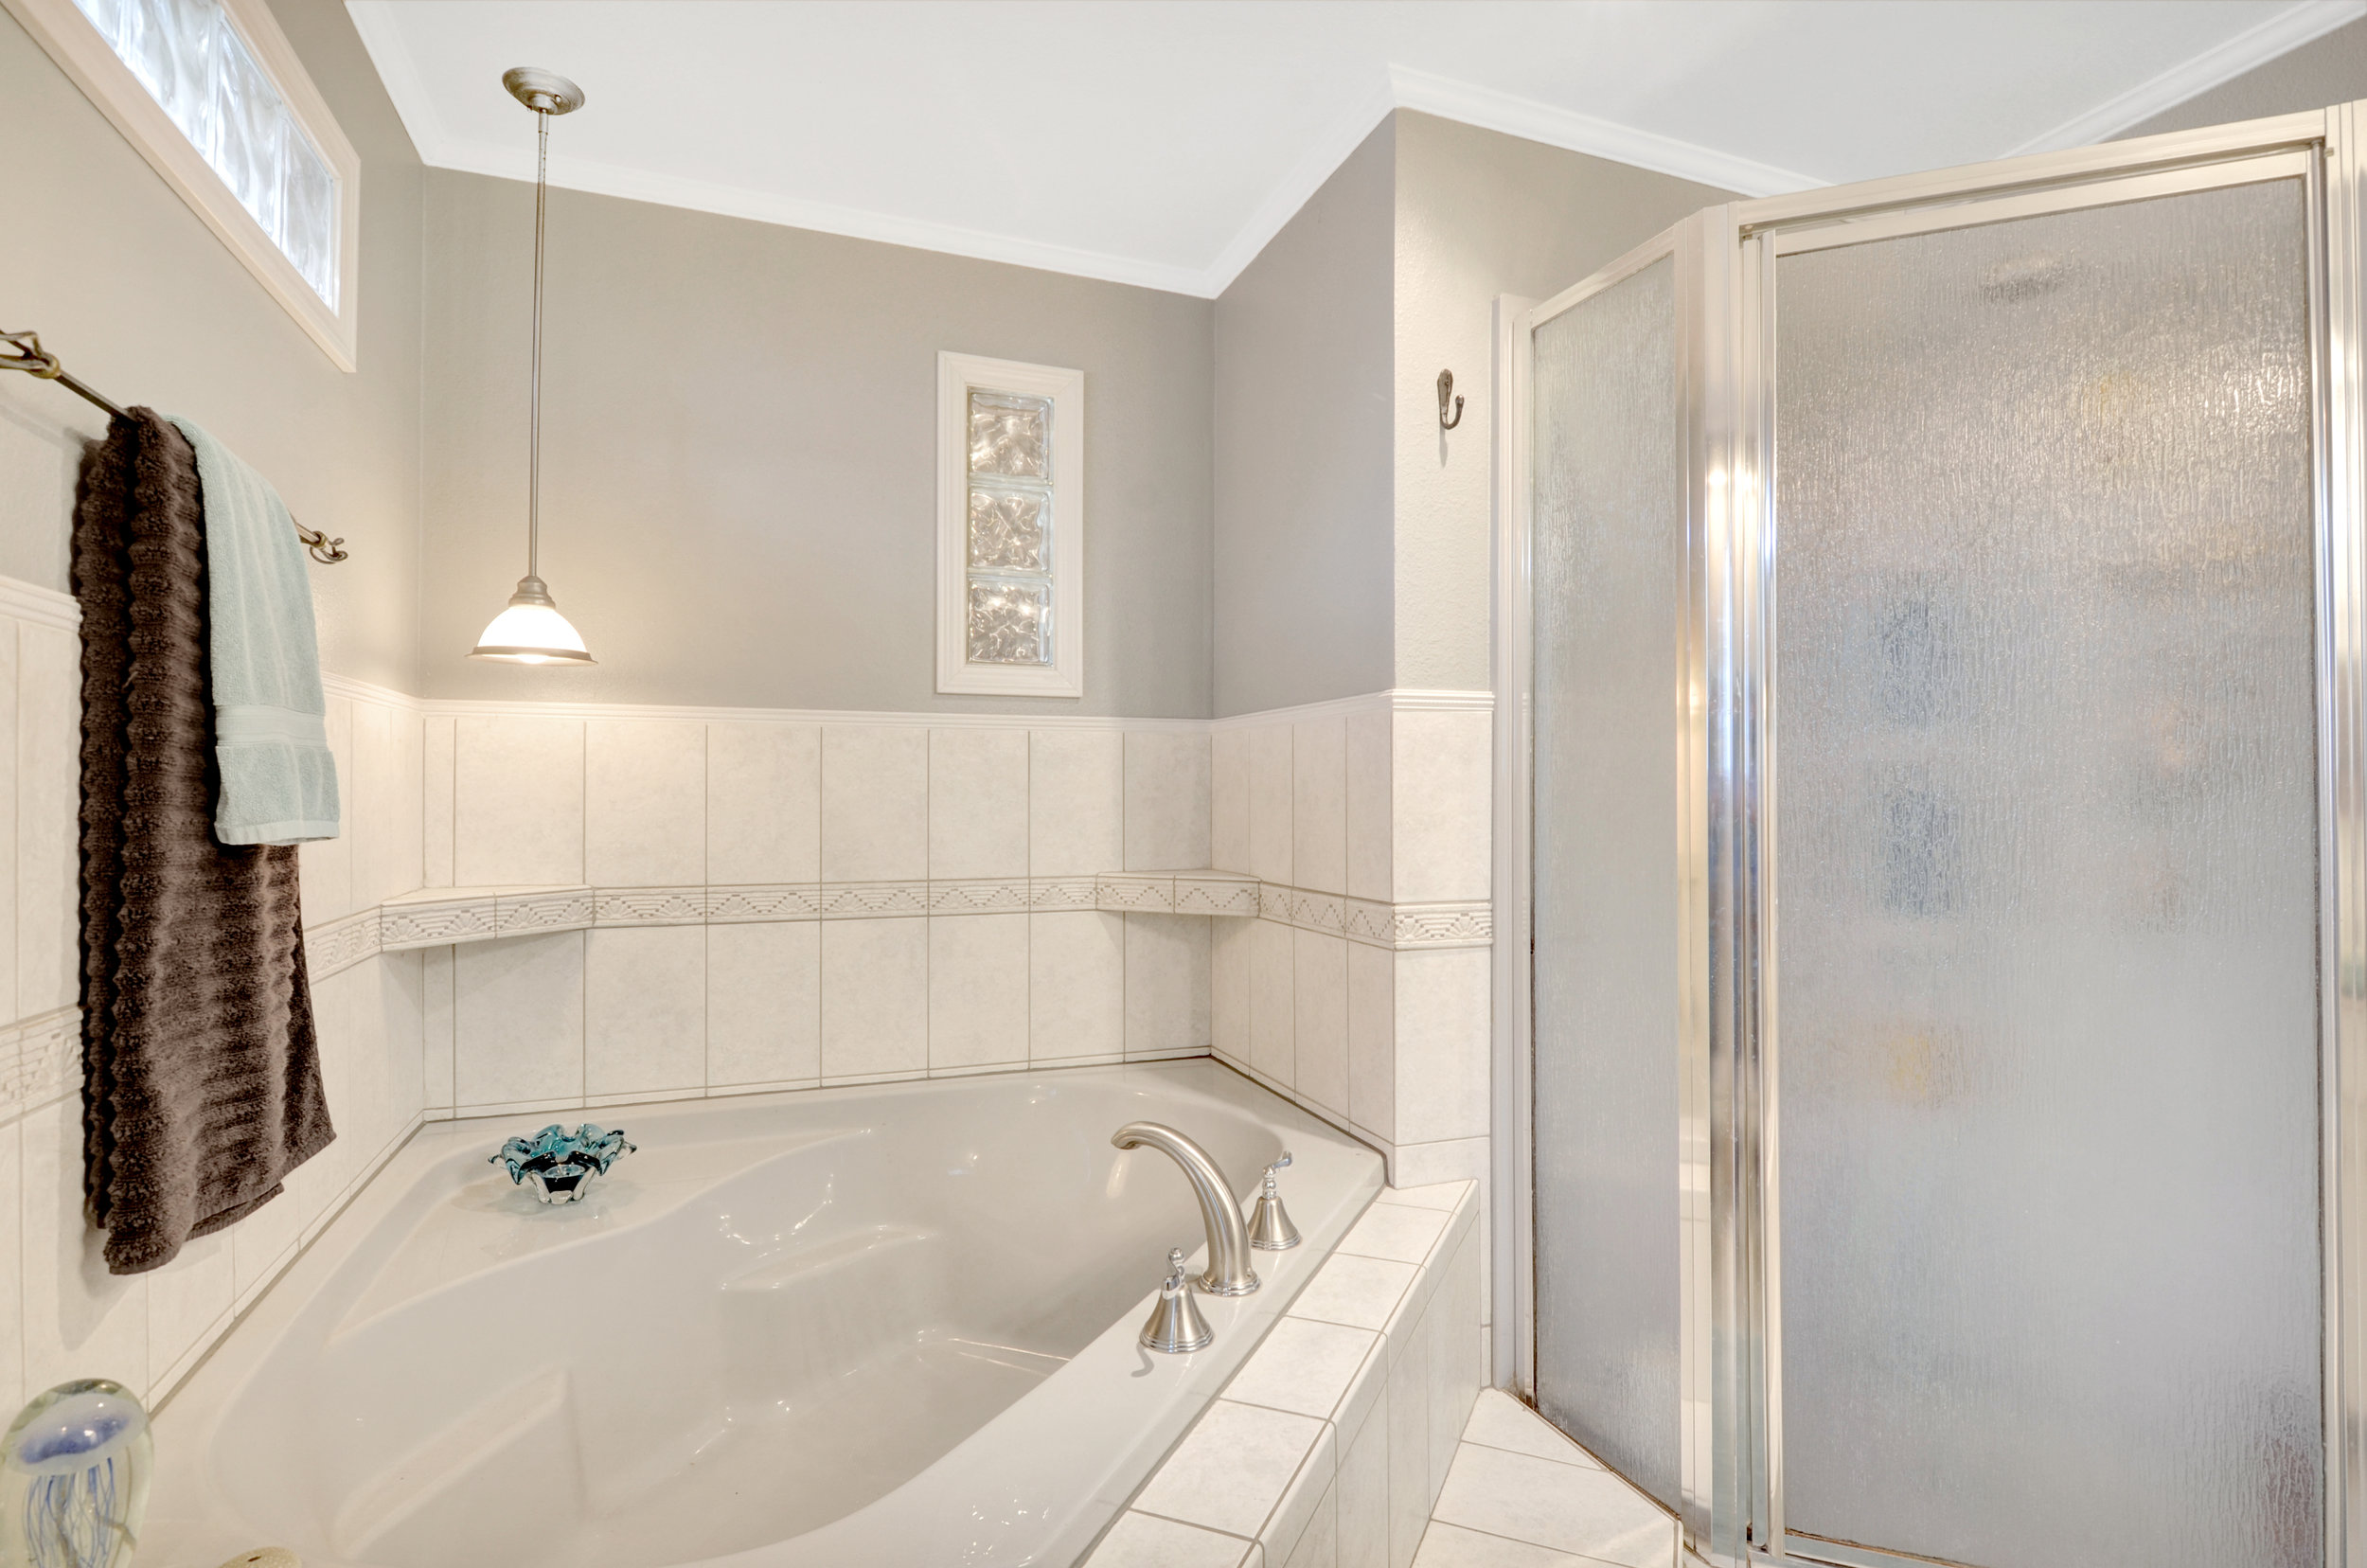 This is a tub for soaking! Privacy glass in the windows and a separate shower complete the room.